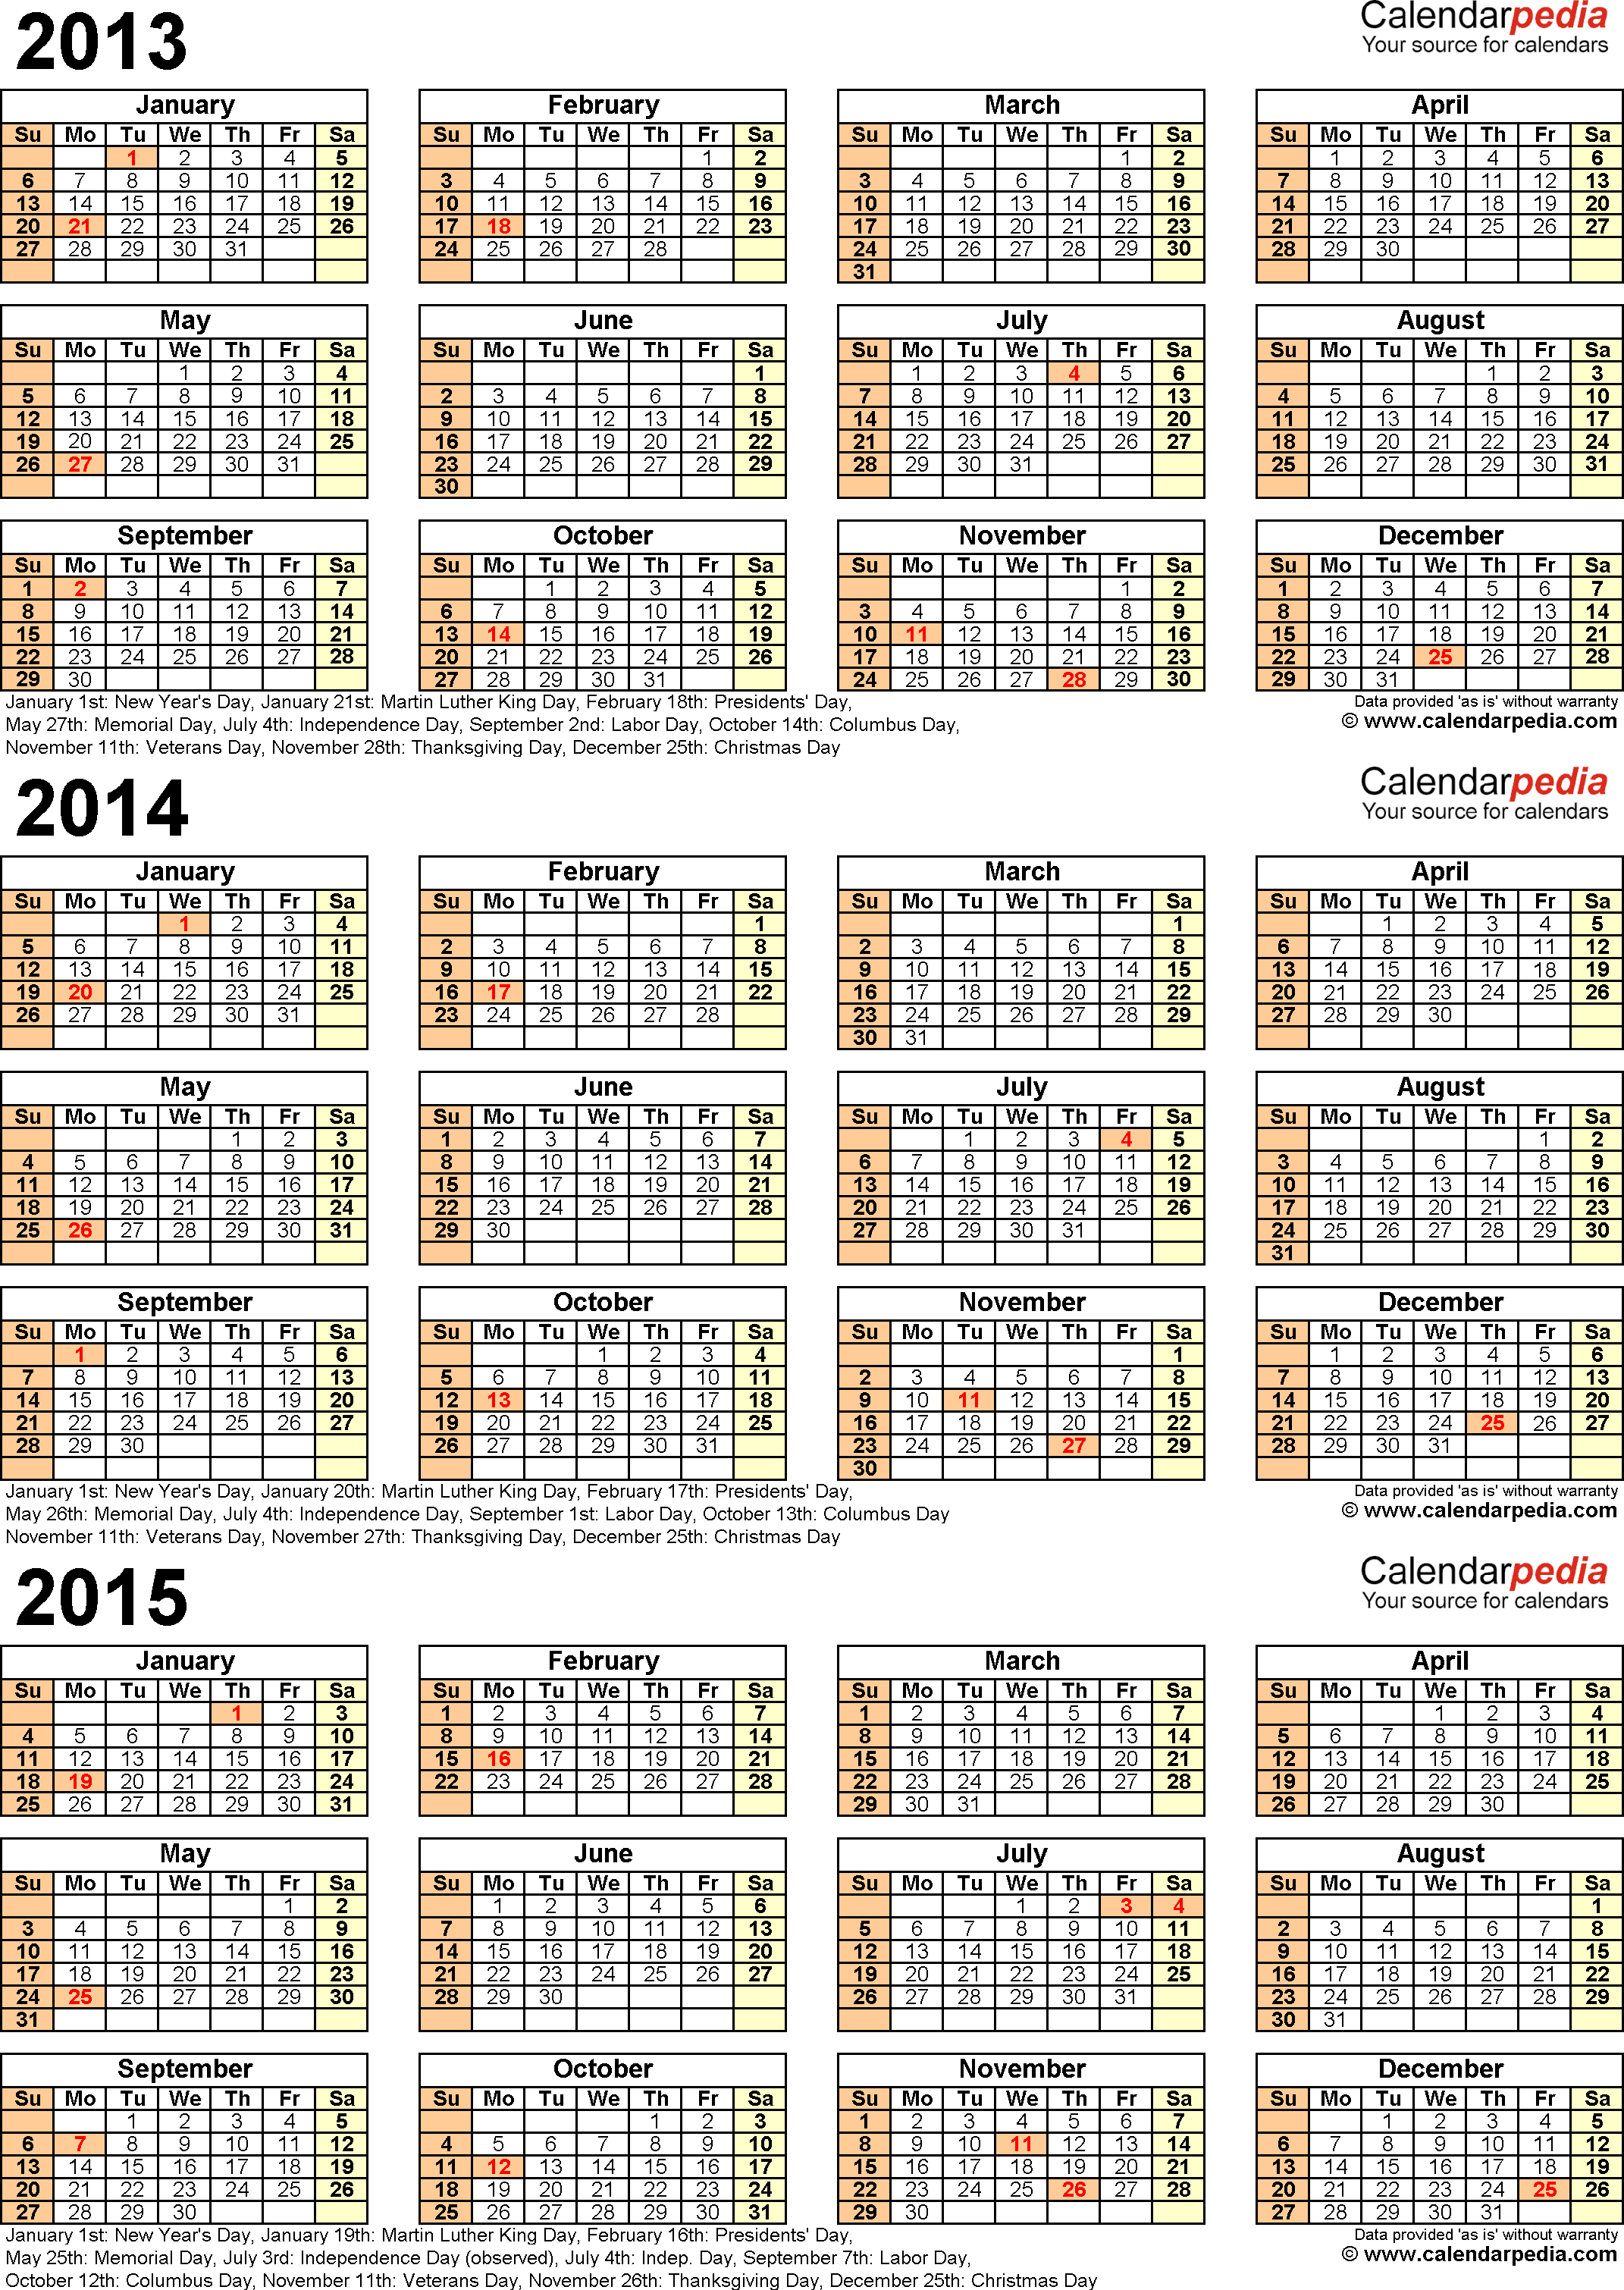 australian calendar template 2015 - 2013 2014 2015 calendar 2 three year printable pdf calendars